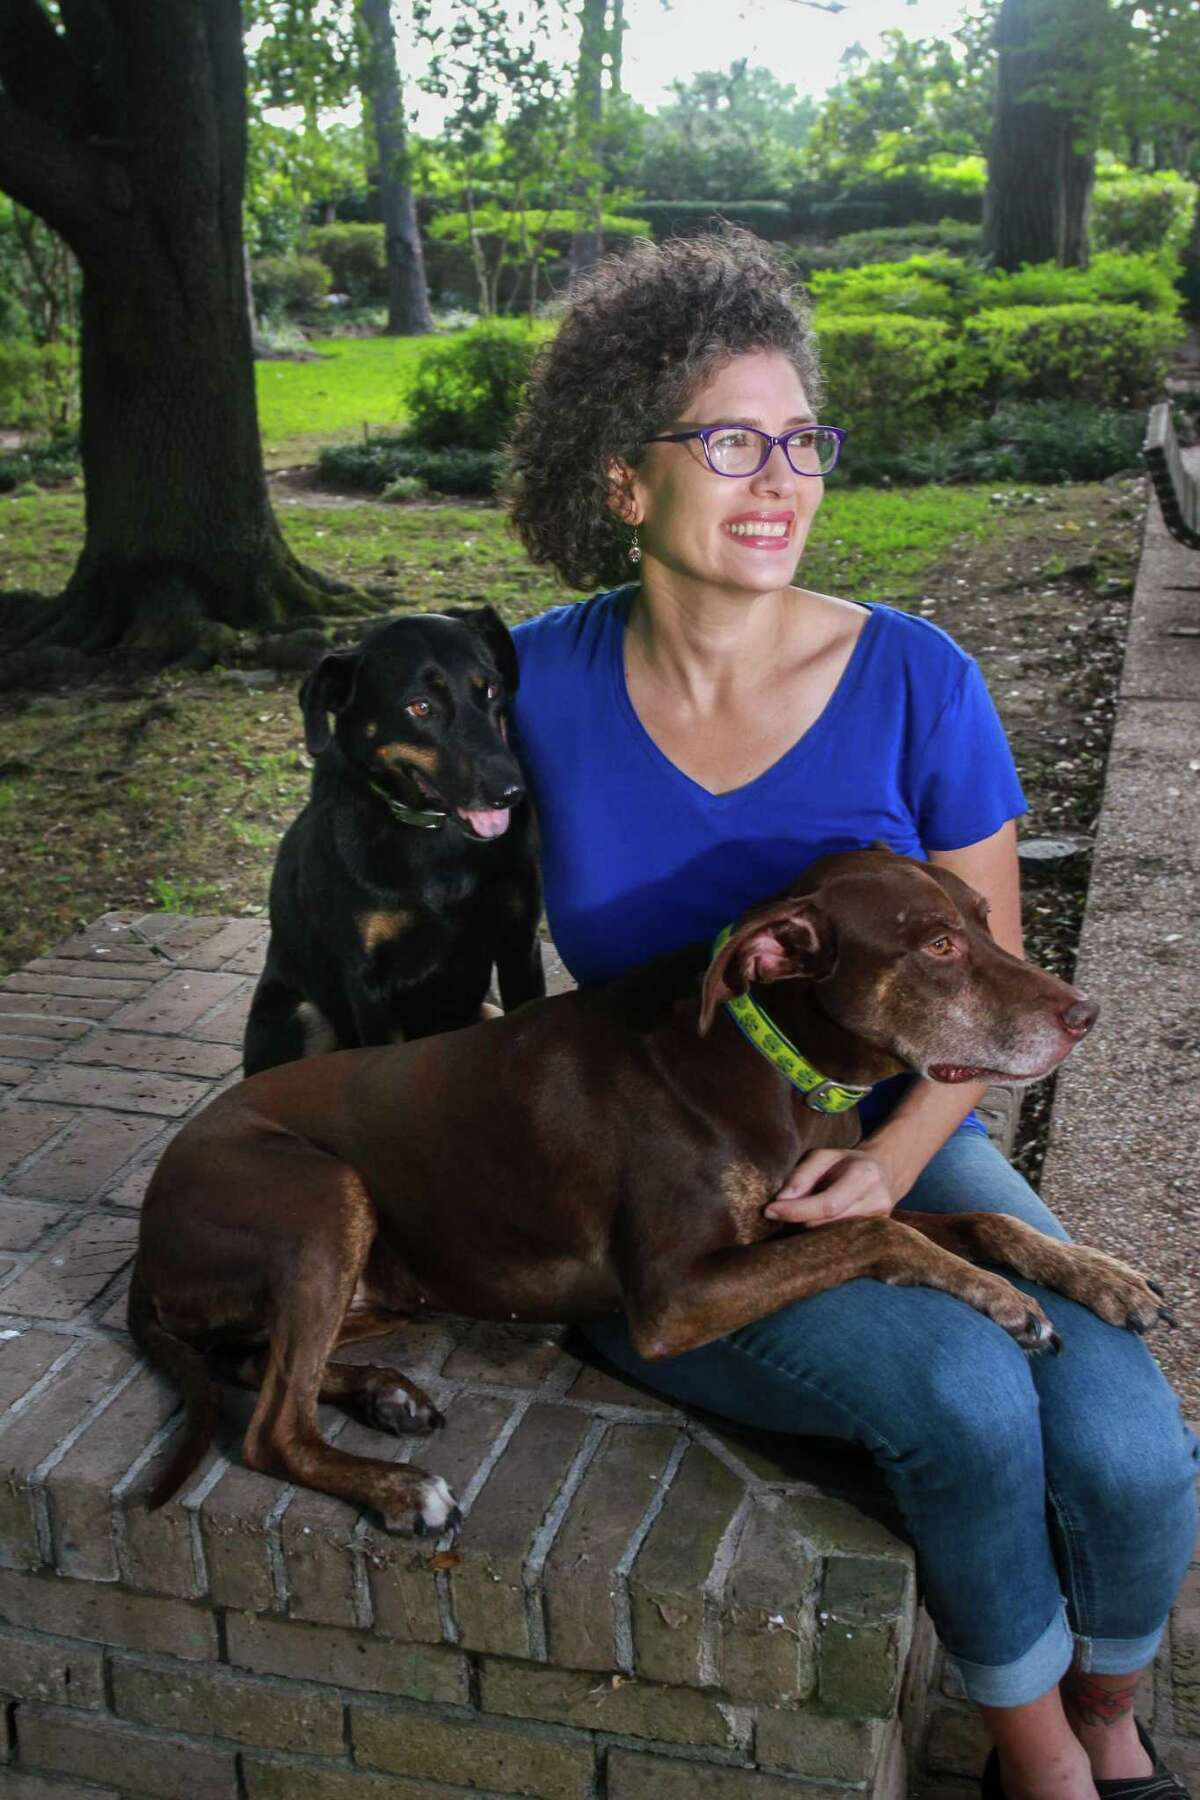 Jennifer Lopez, founder of Pupfit, an adventure exercise program for dogs, with her dogs Hazel and Xena.